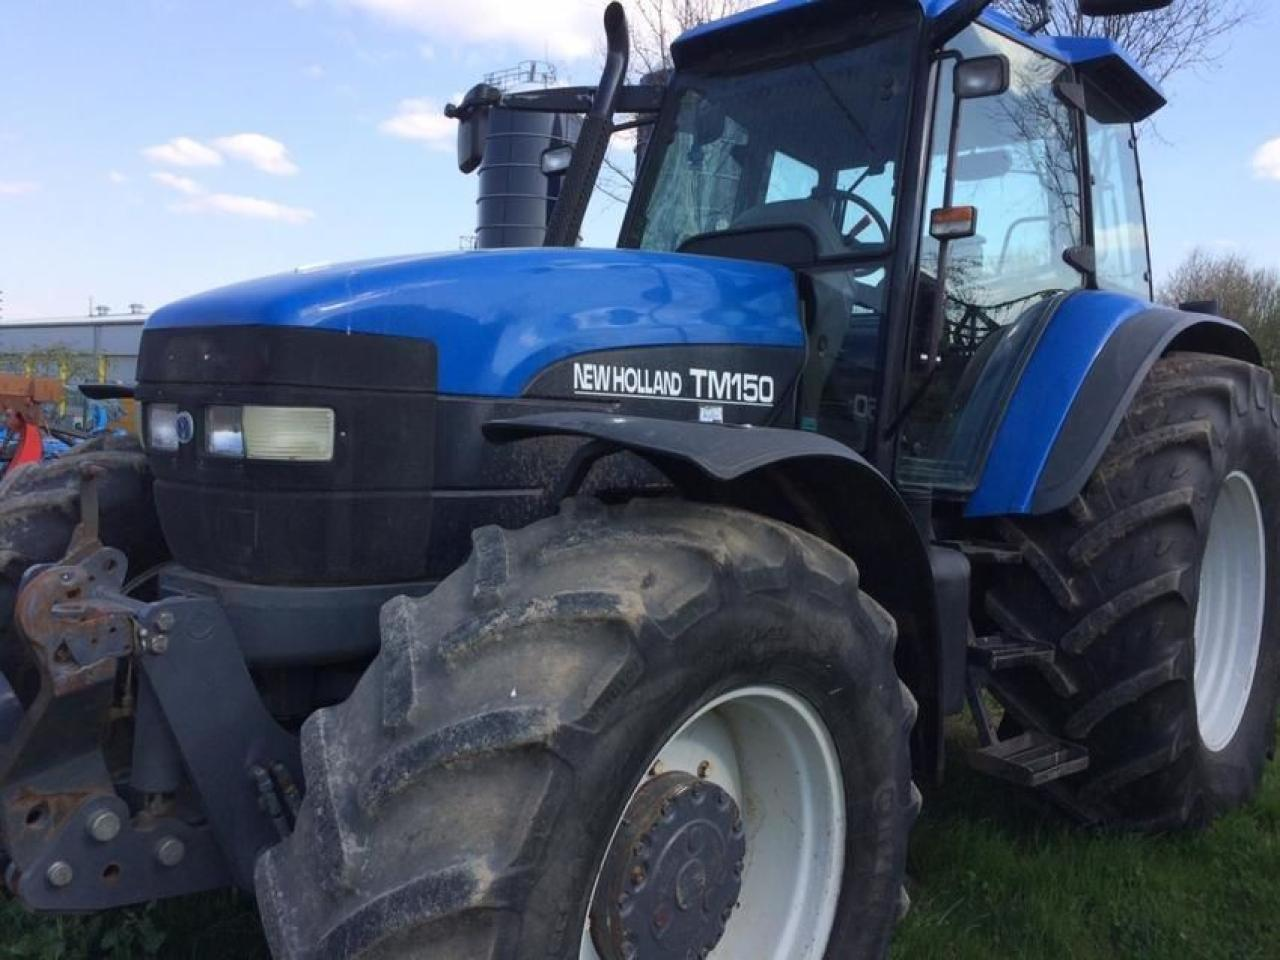 Trattore agricolo New Holland TM150 - Truck1 ID: 3830963